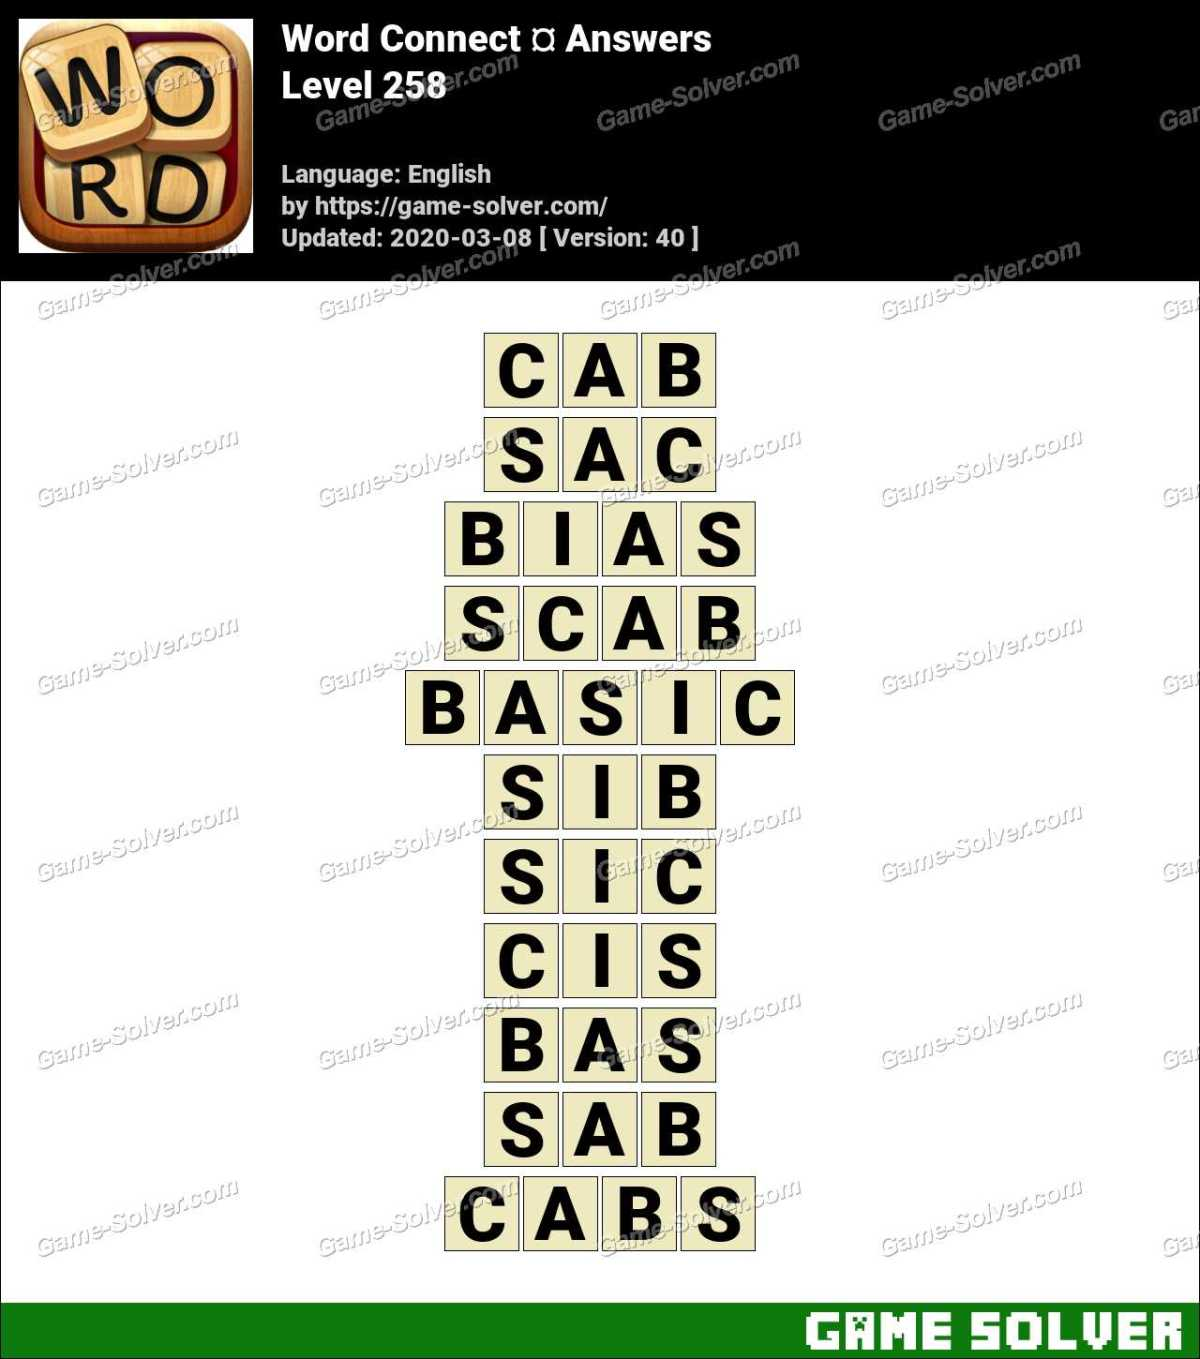 Word Connect Level 258 Answers